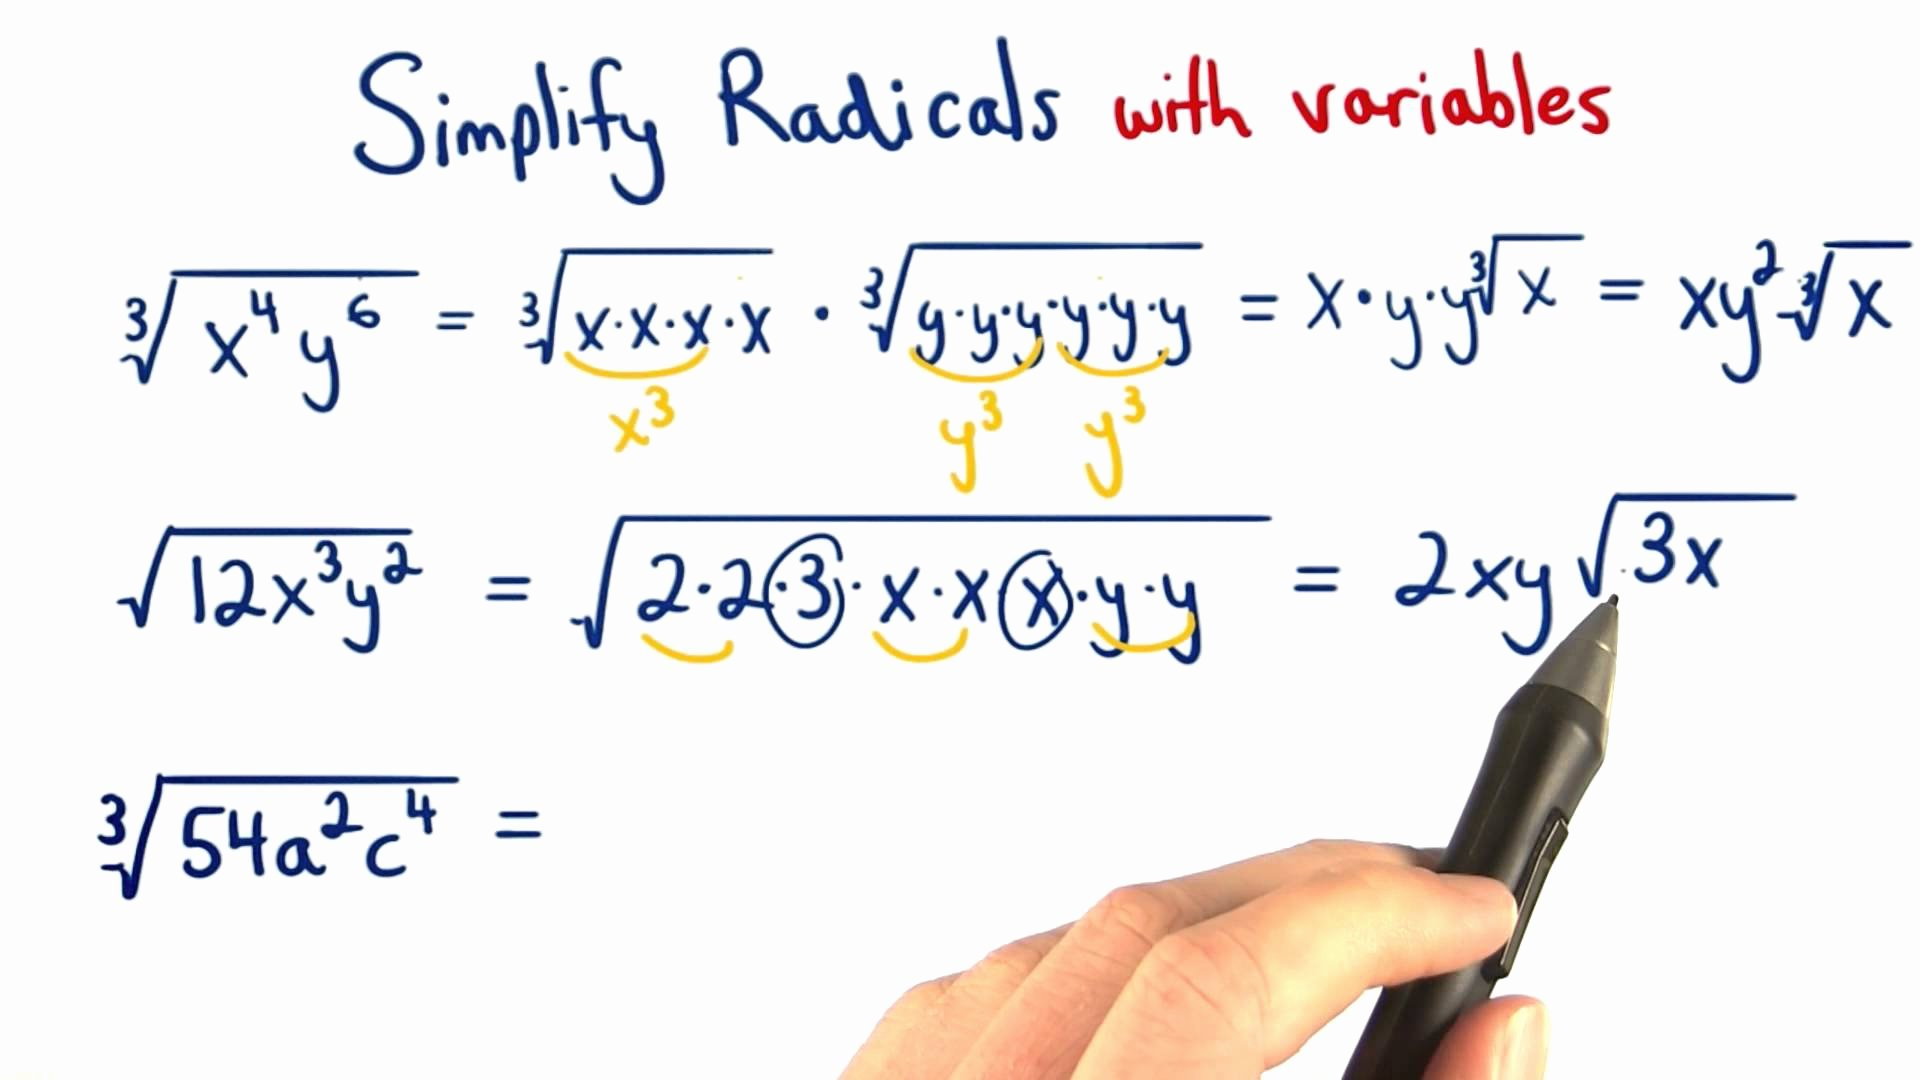 Simplifying Radicals Worksheet 1 Answers Lovely Simplifying Radicals Worksheet 1 Answers the Best